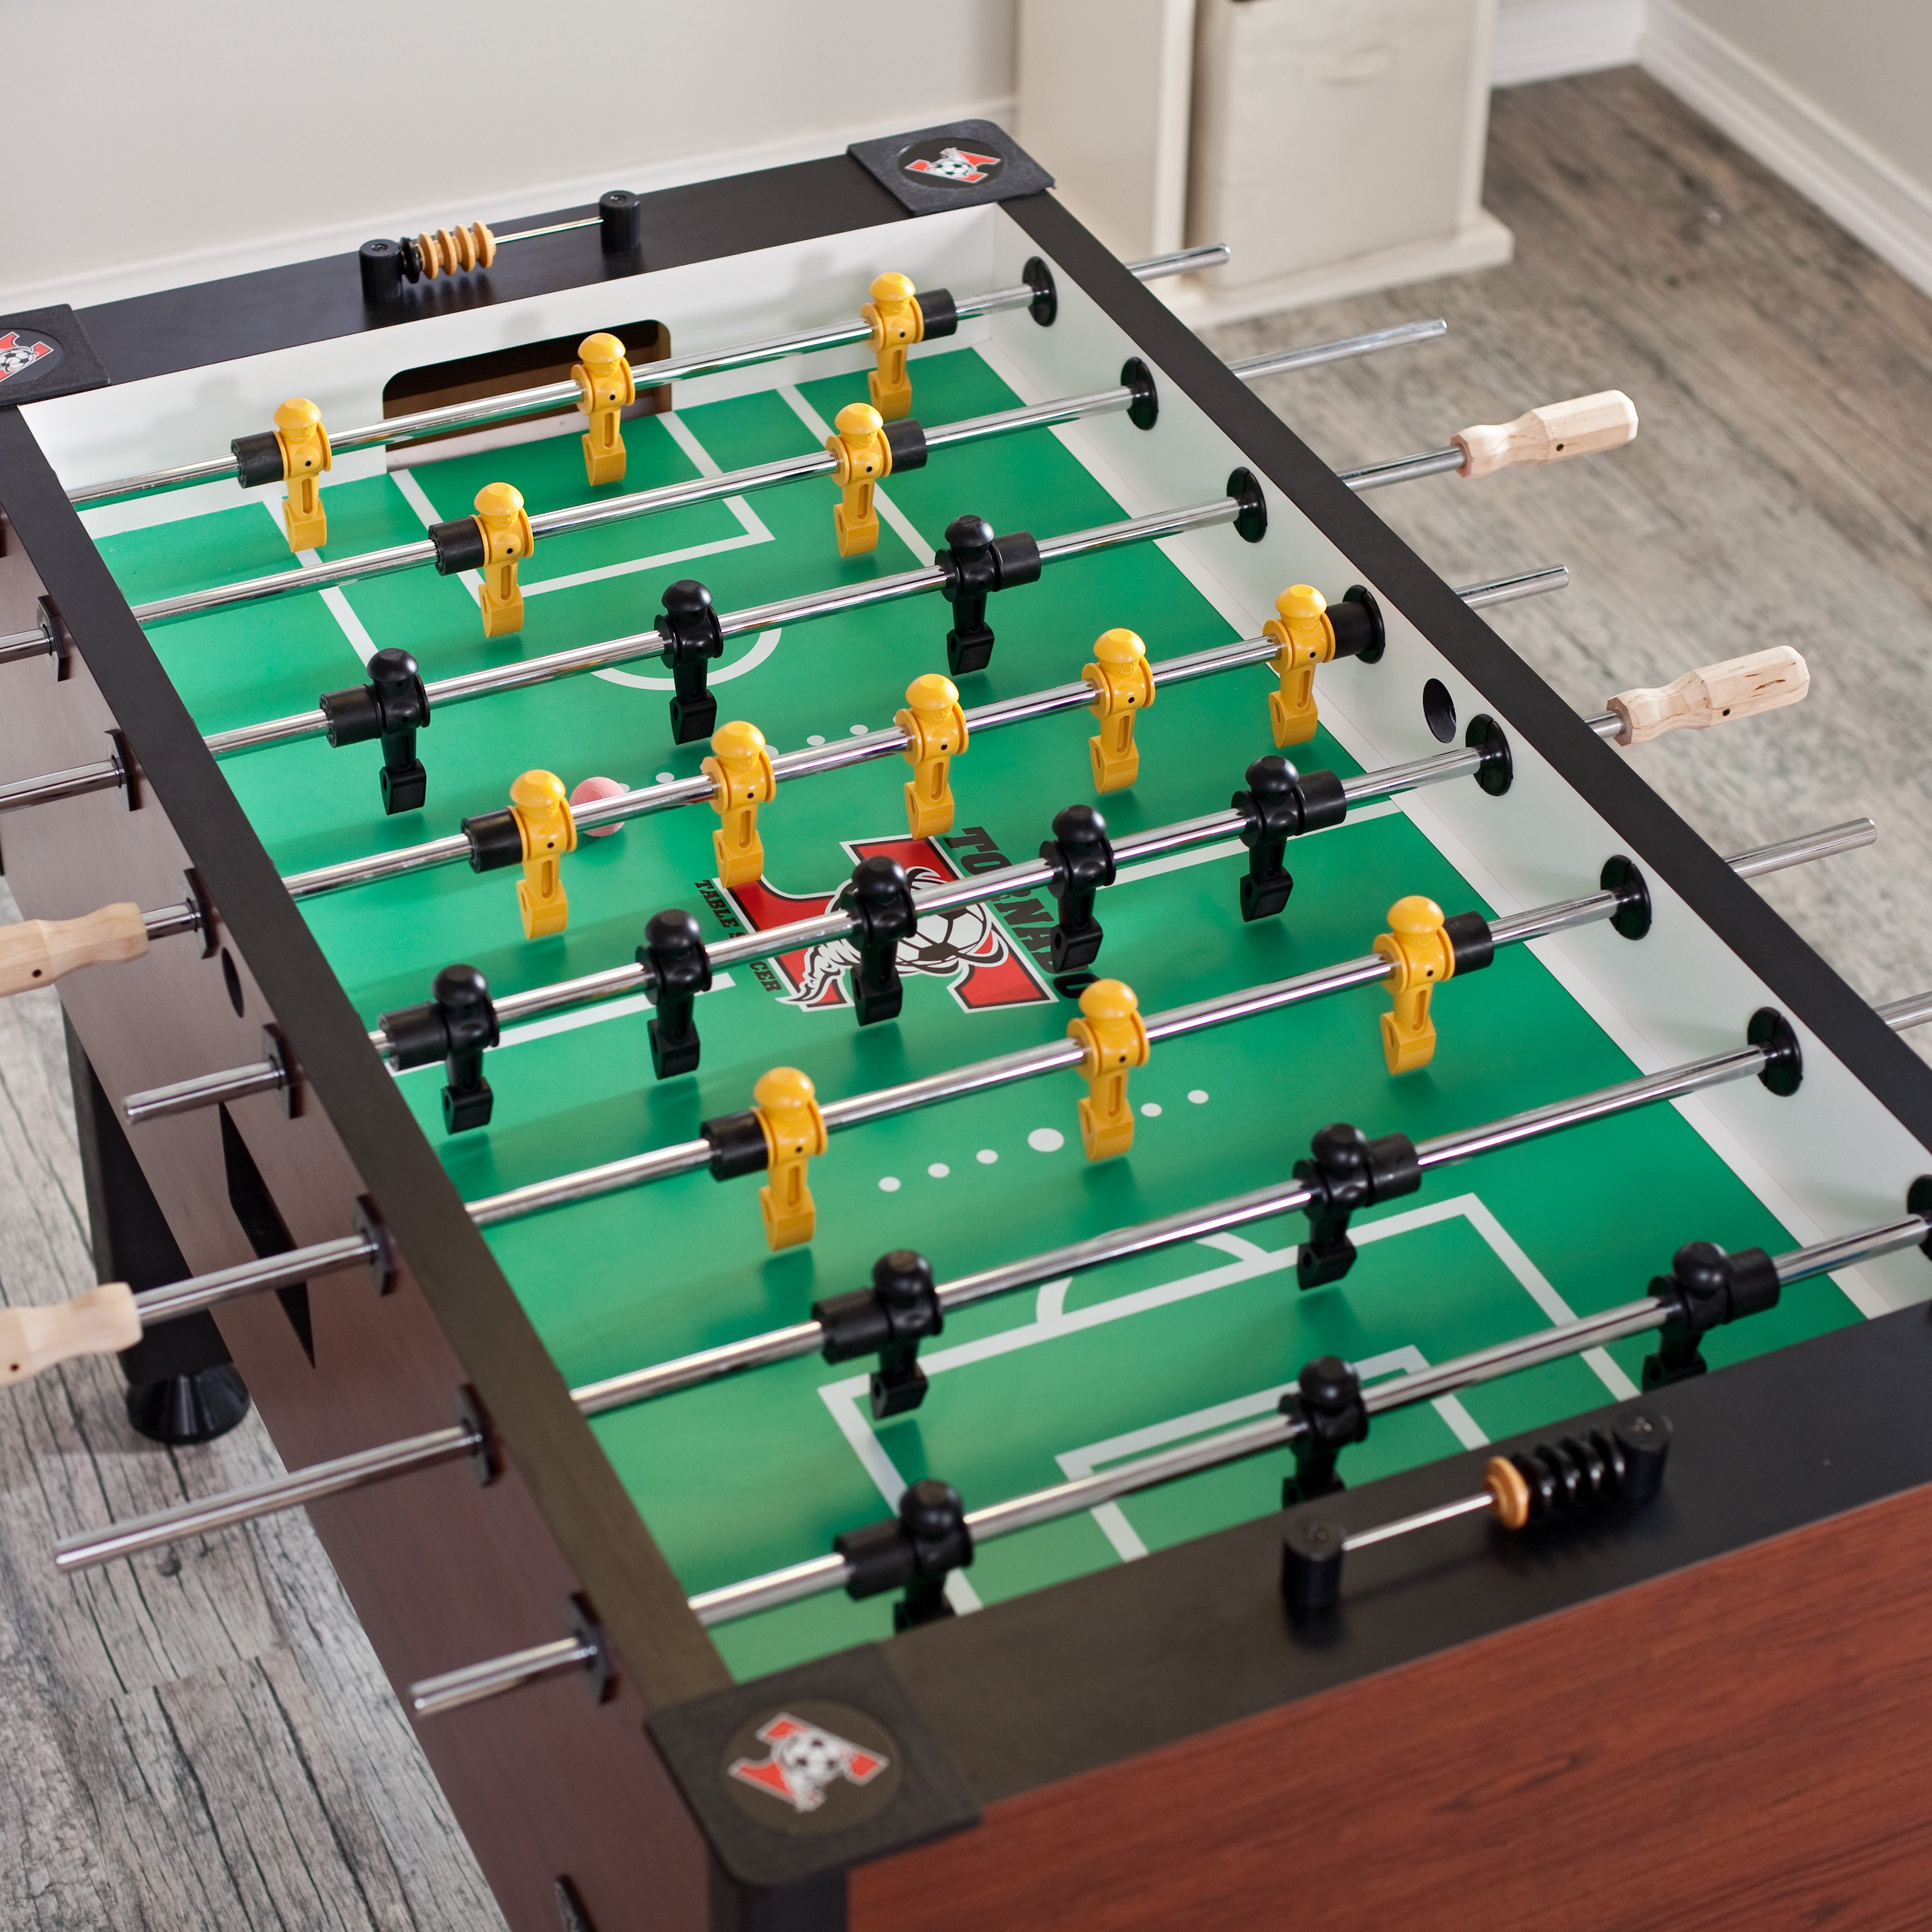 A foosball table game that reminds Rory of an early childhood experience with his dad.